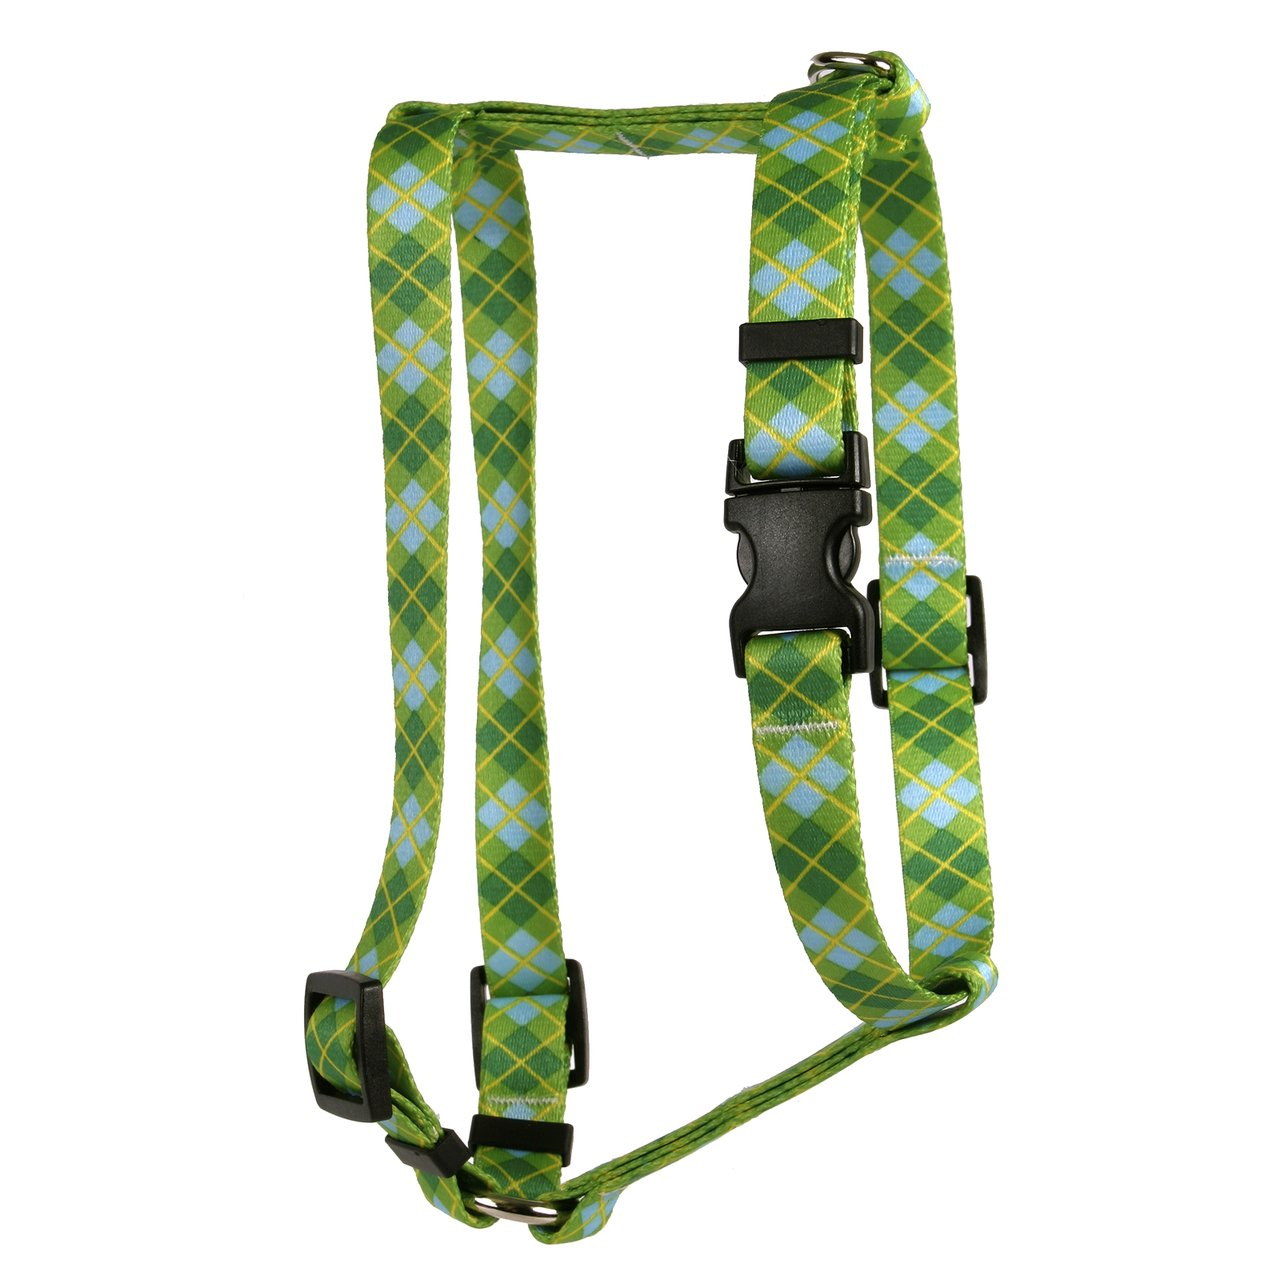 Yellow Dog Design Argyle Green Roman Style H Dog Harness Fits Chest Circumference of 8 to 14'', X-Small/3/8